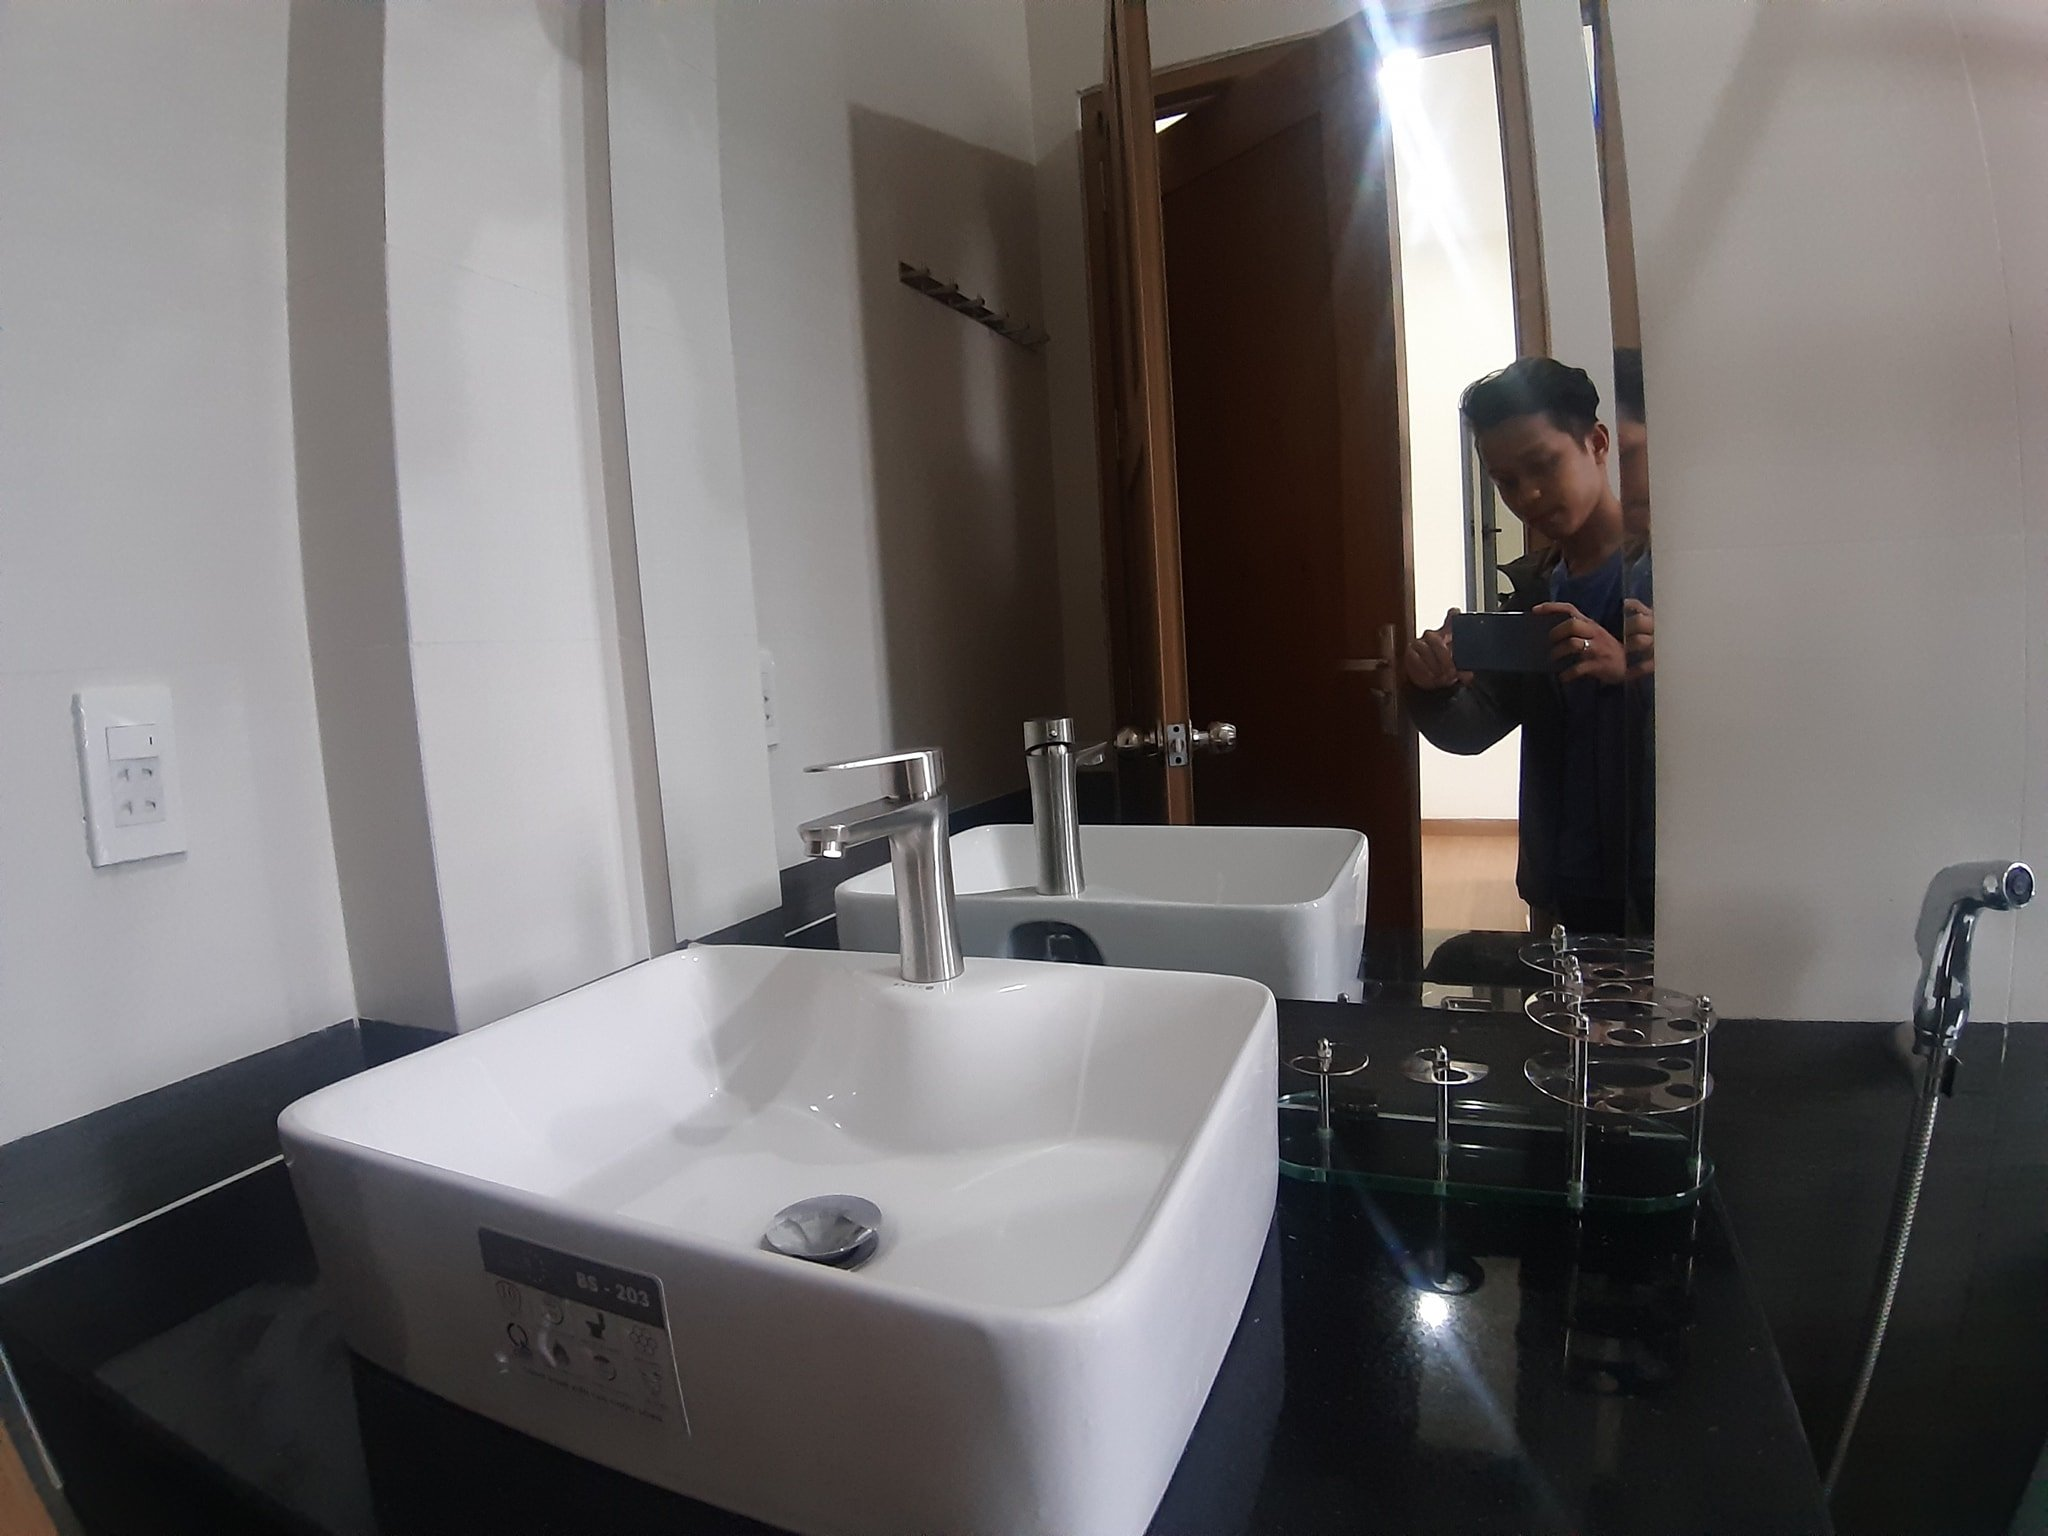 1 Bedroom Apartment for rent with Balcony close to My Khe Beach Da Nang